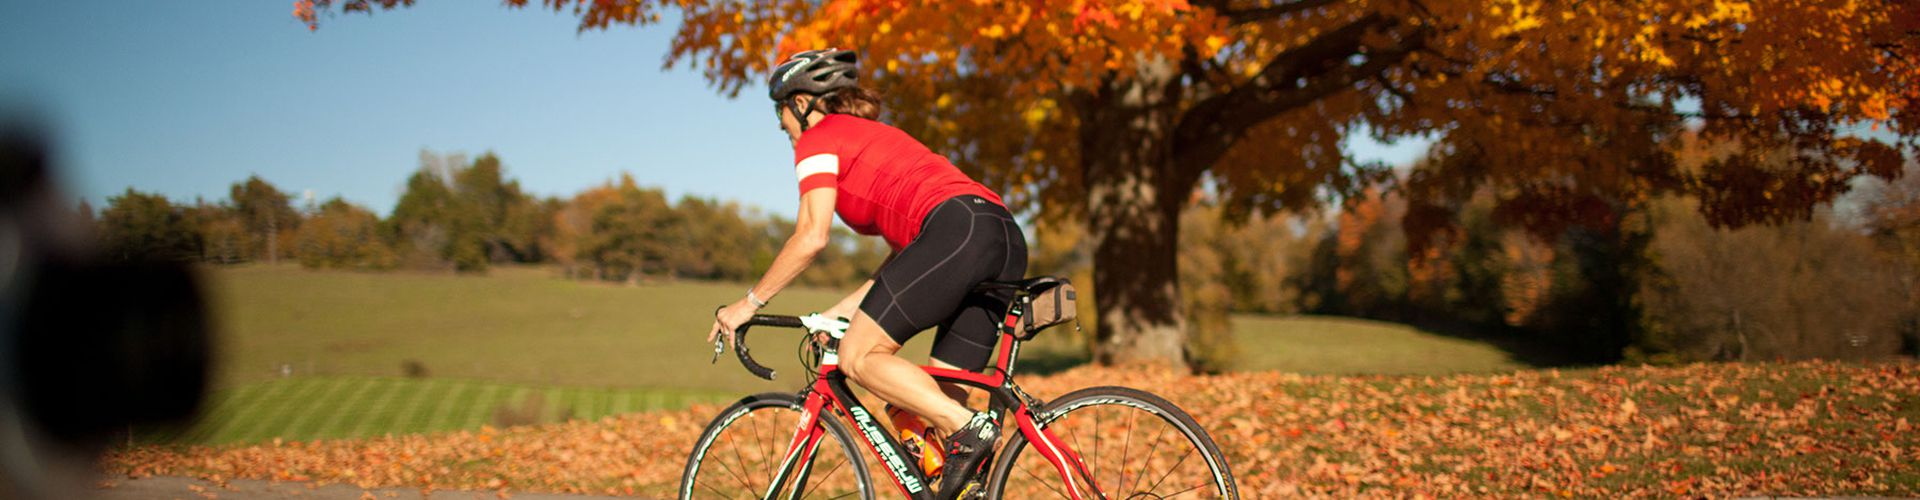 10 spectacular cycling routes for fall